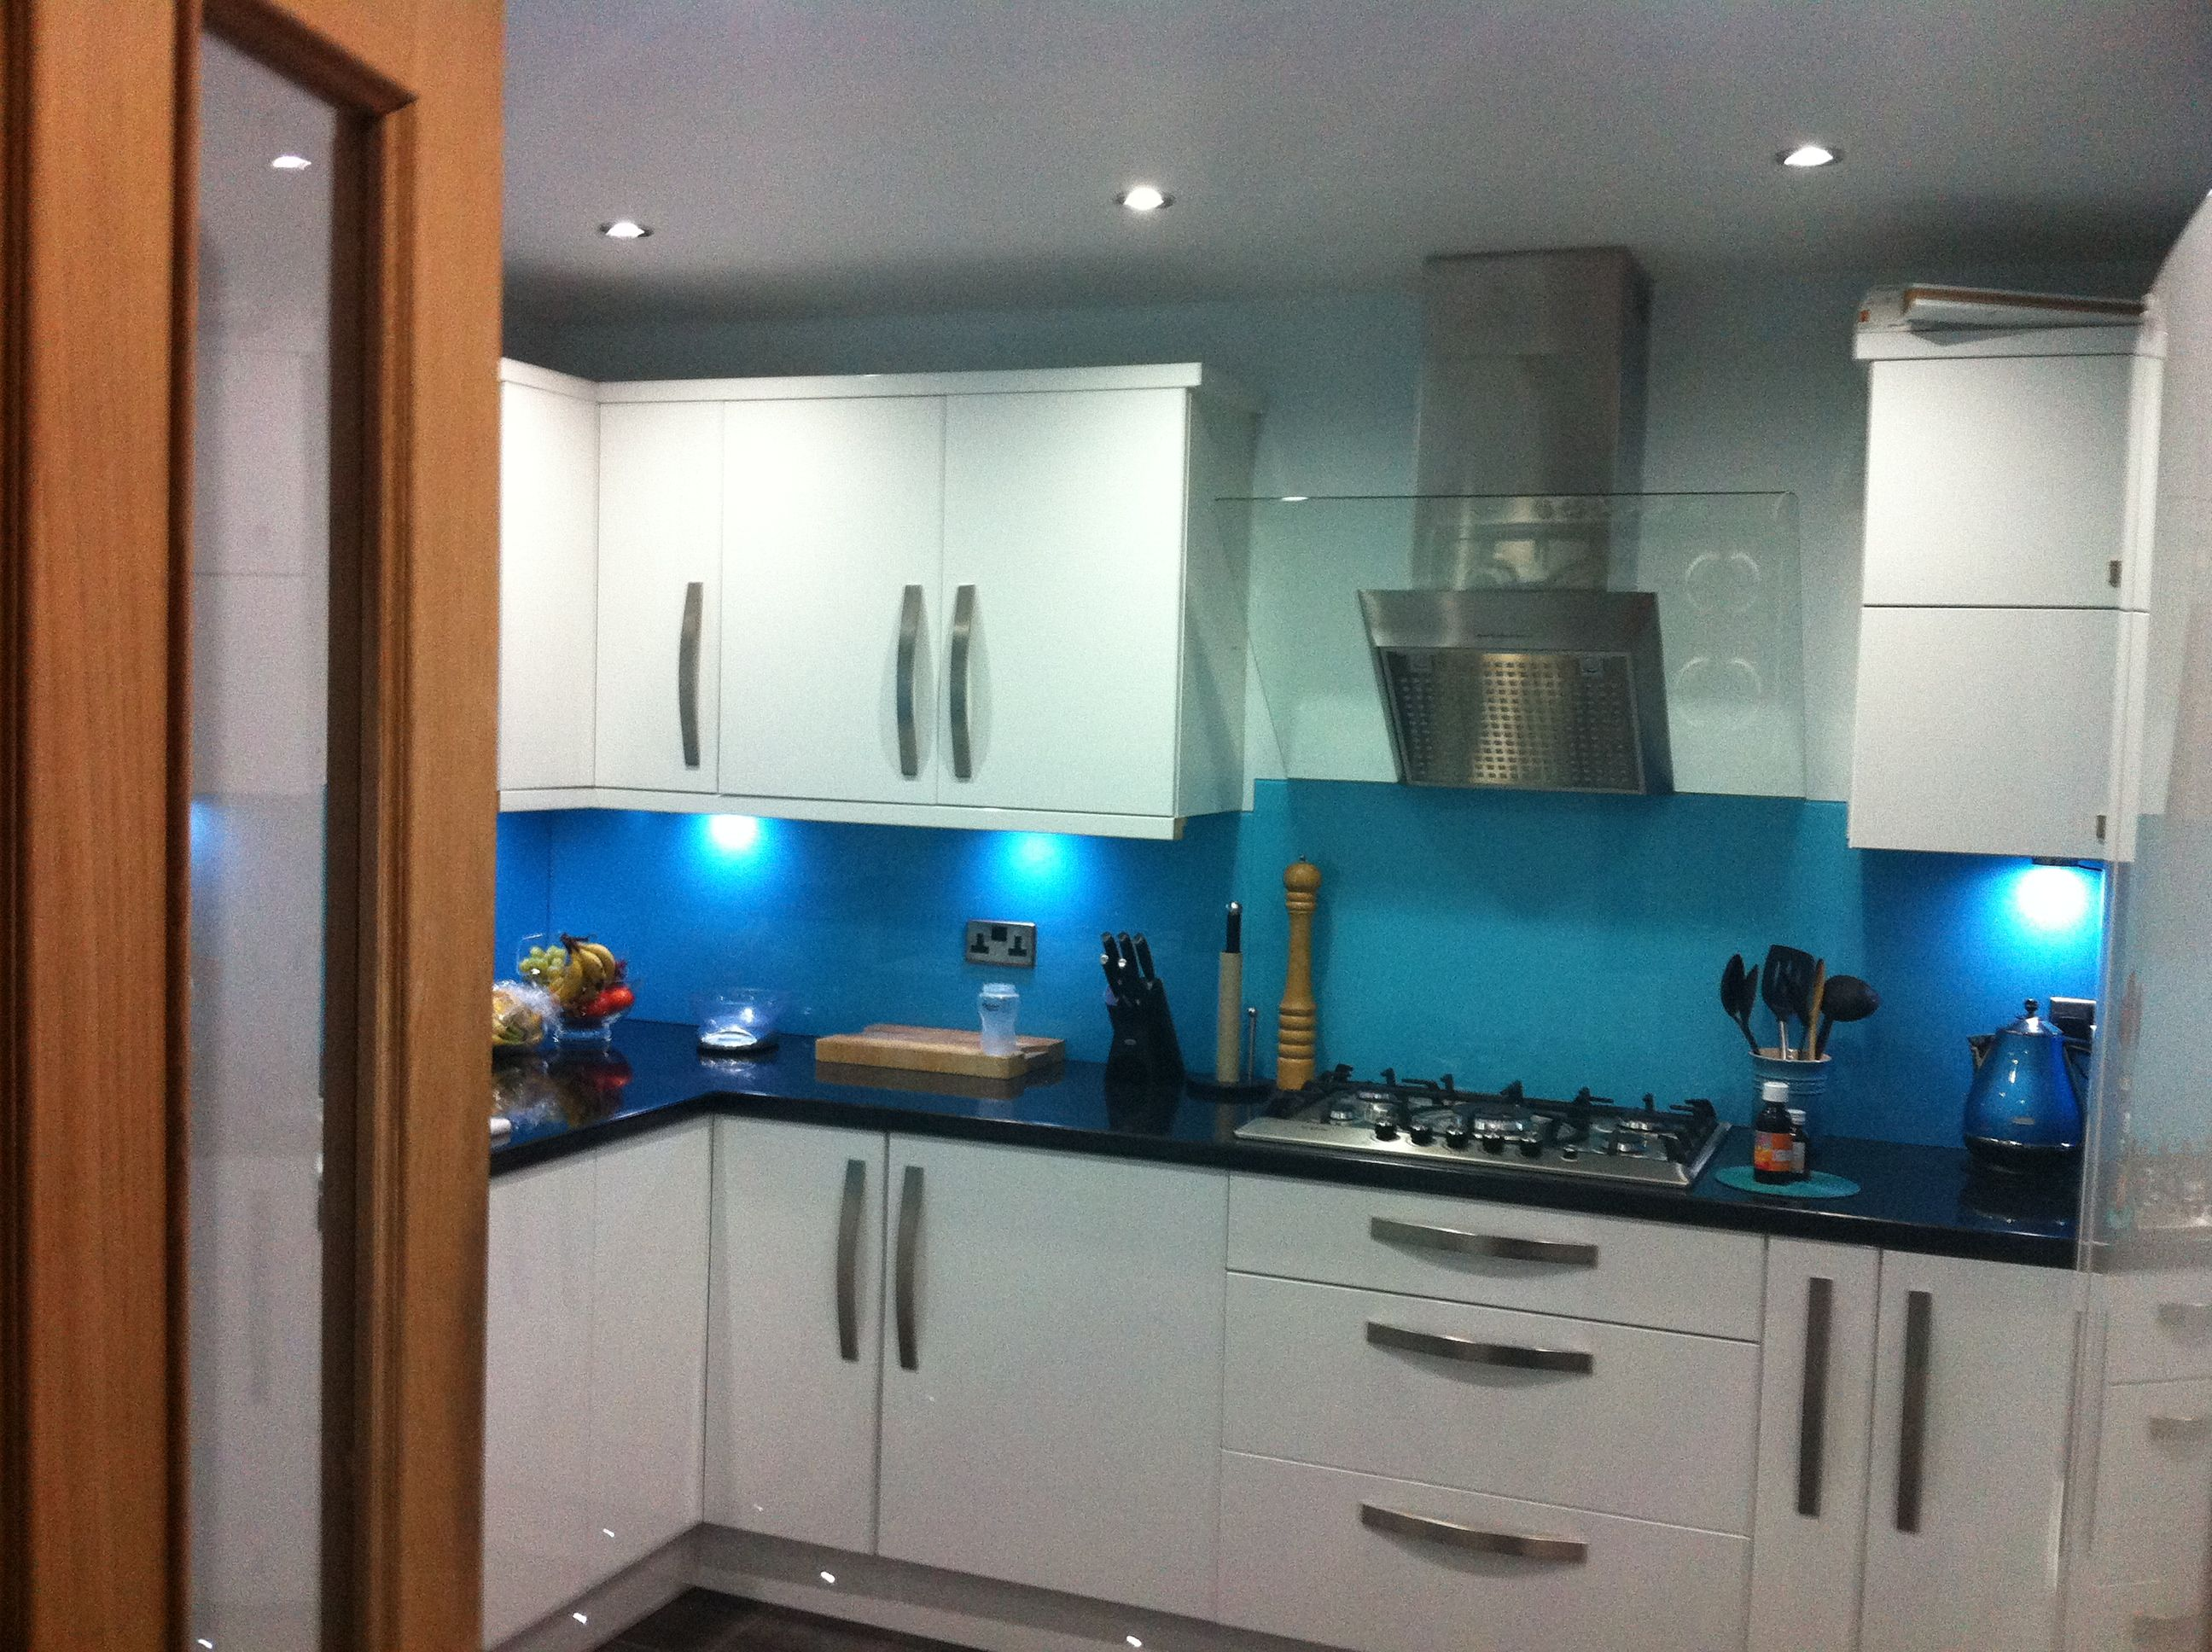 B & Q Cooke and lewis High gloss | Kitchen Cupboards | Pinterest ...